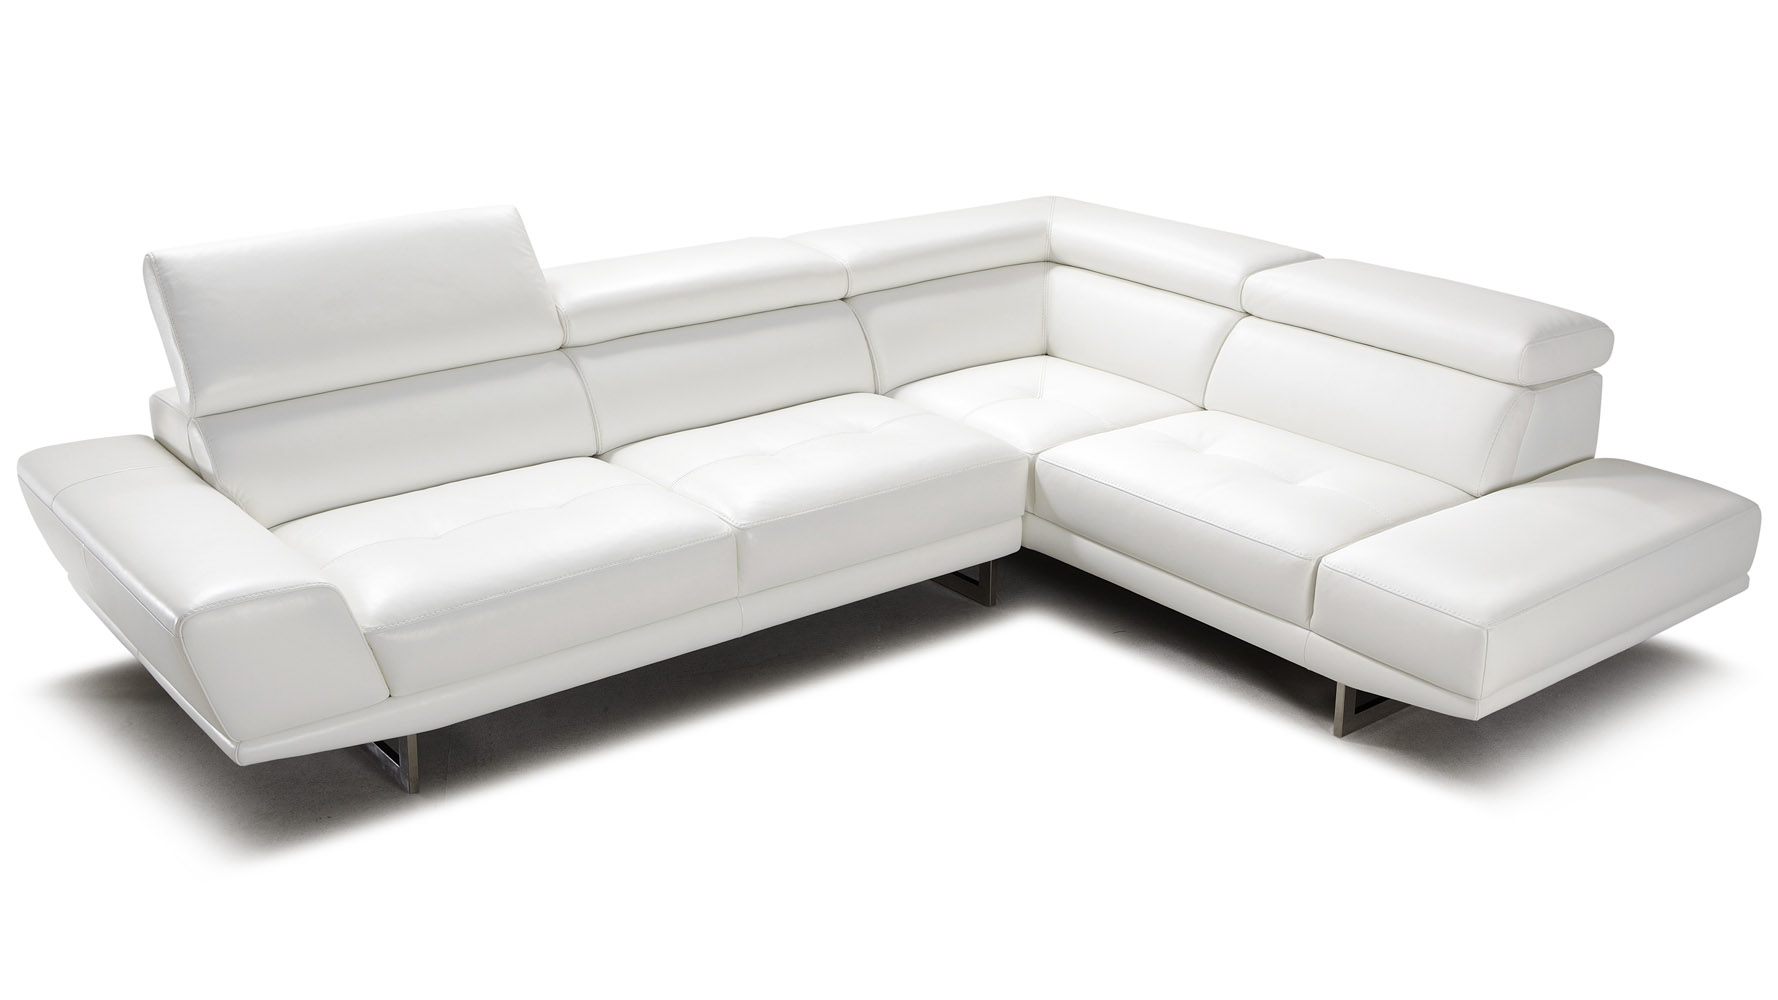 http://www.zurifurniture.com/common/images/products/large/posh-sectional-set-left-3a-and-corner-and-right-arm-chaise-white_1.jpg